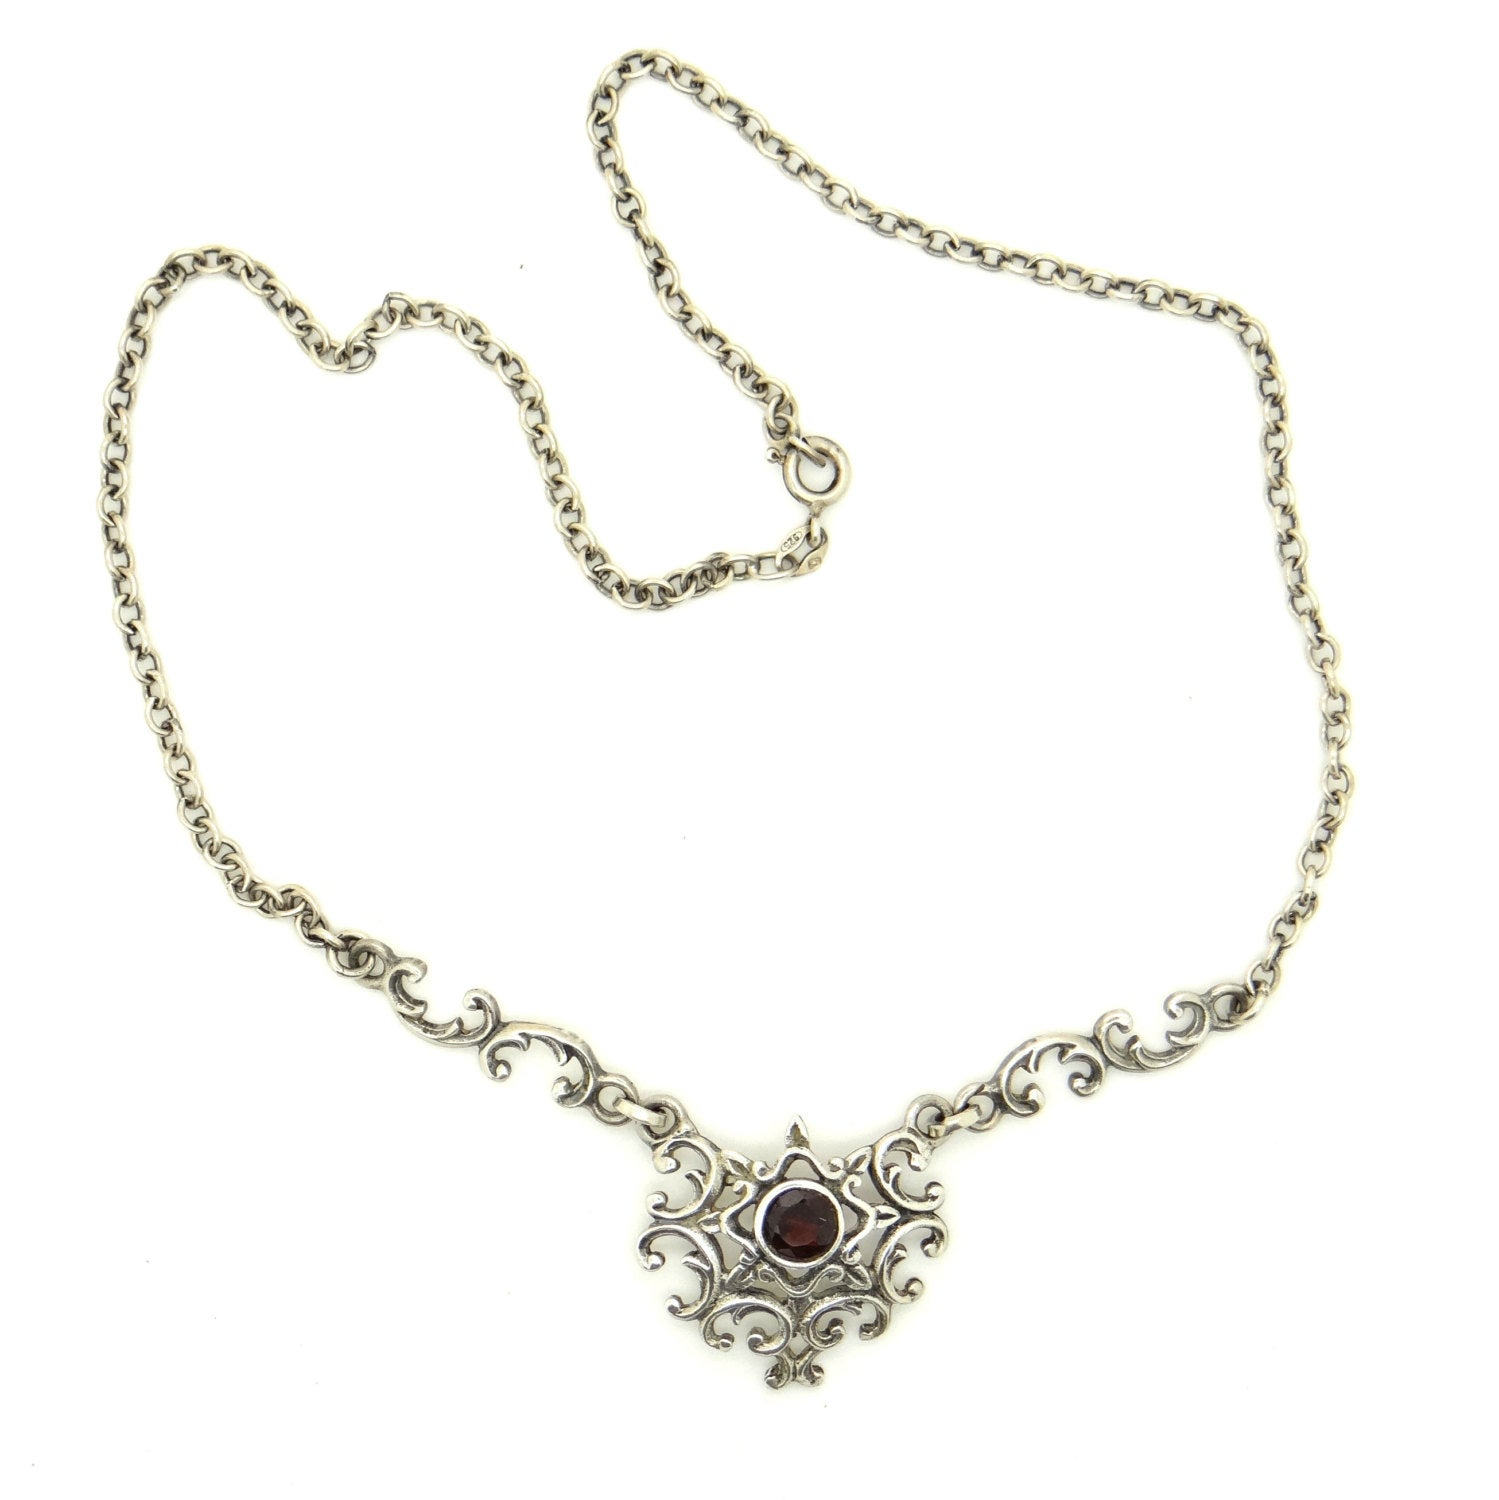 Edwardian sterling Silver garnet necklace